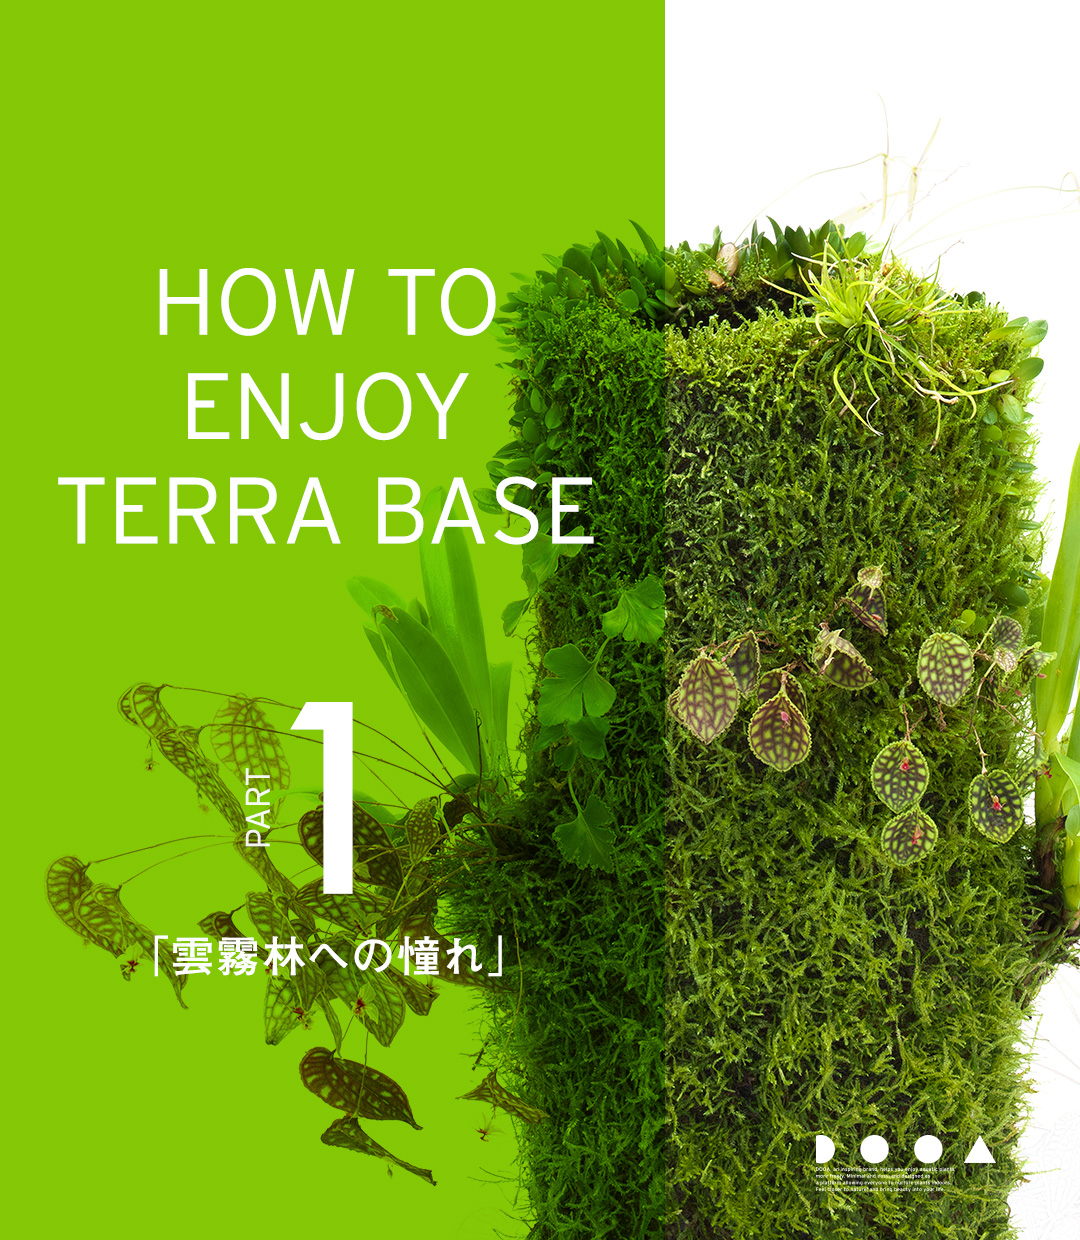 HOW TO ENJOY TERRA BASE 「雲霧林への憧れ」